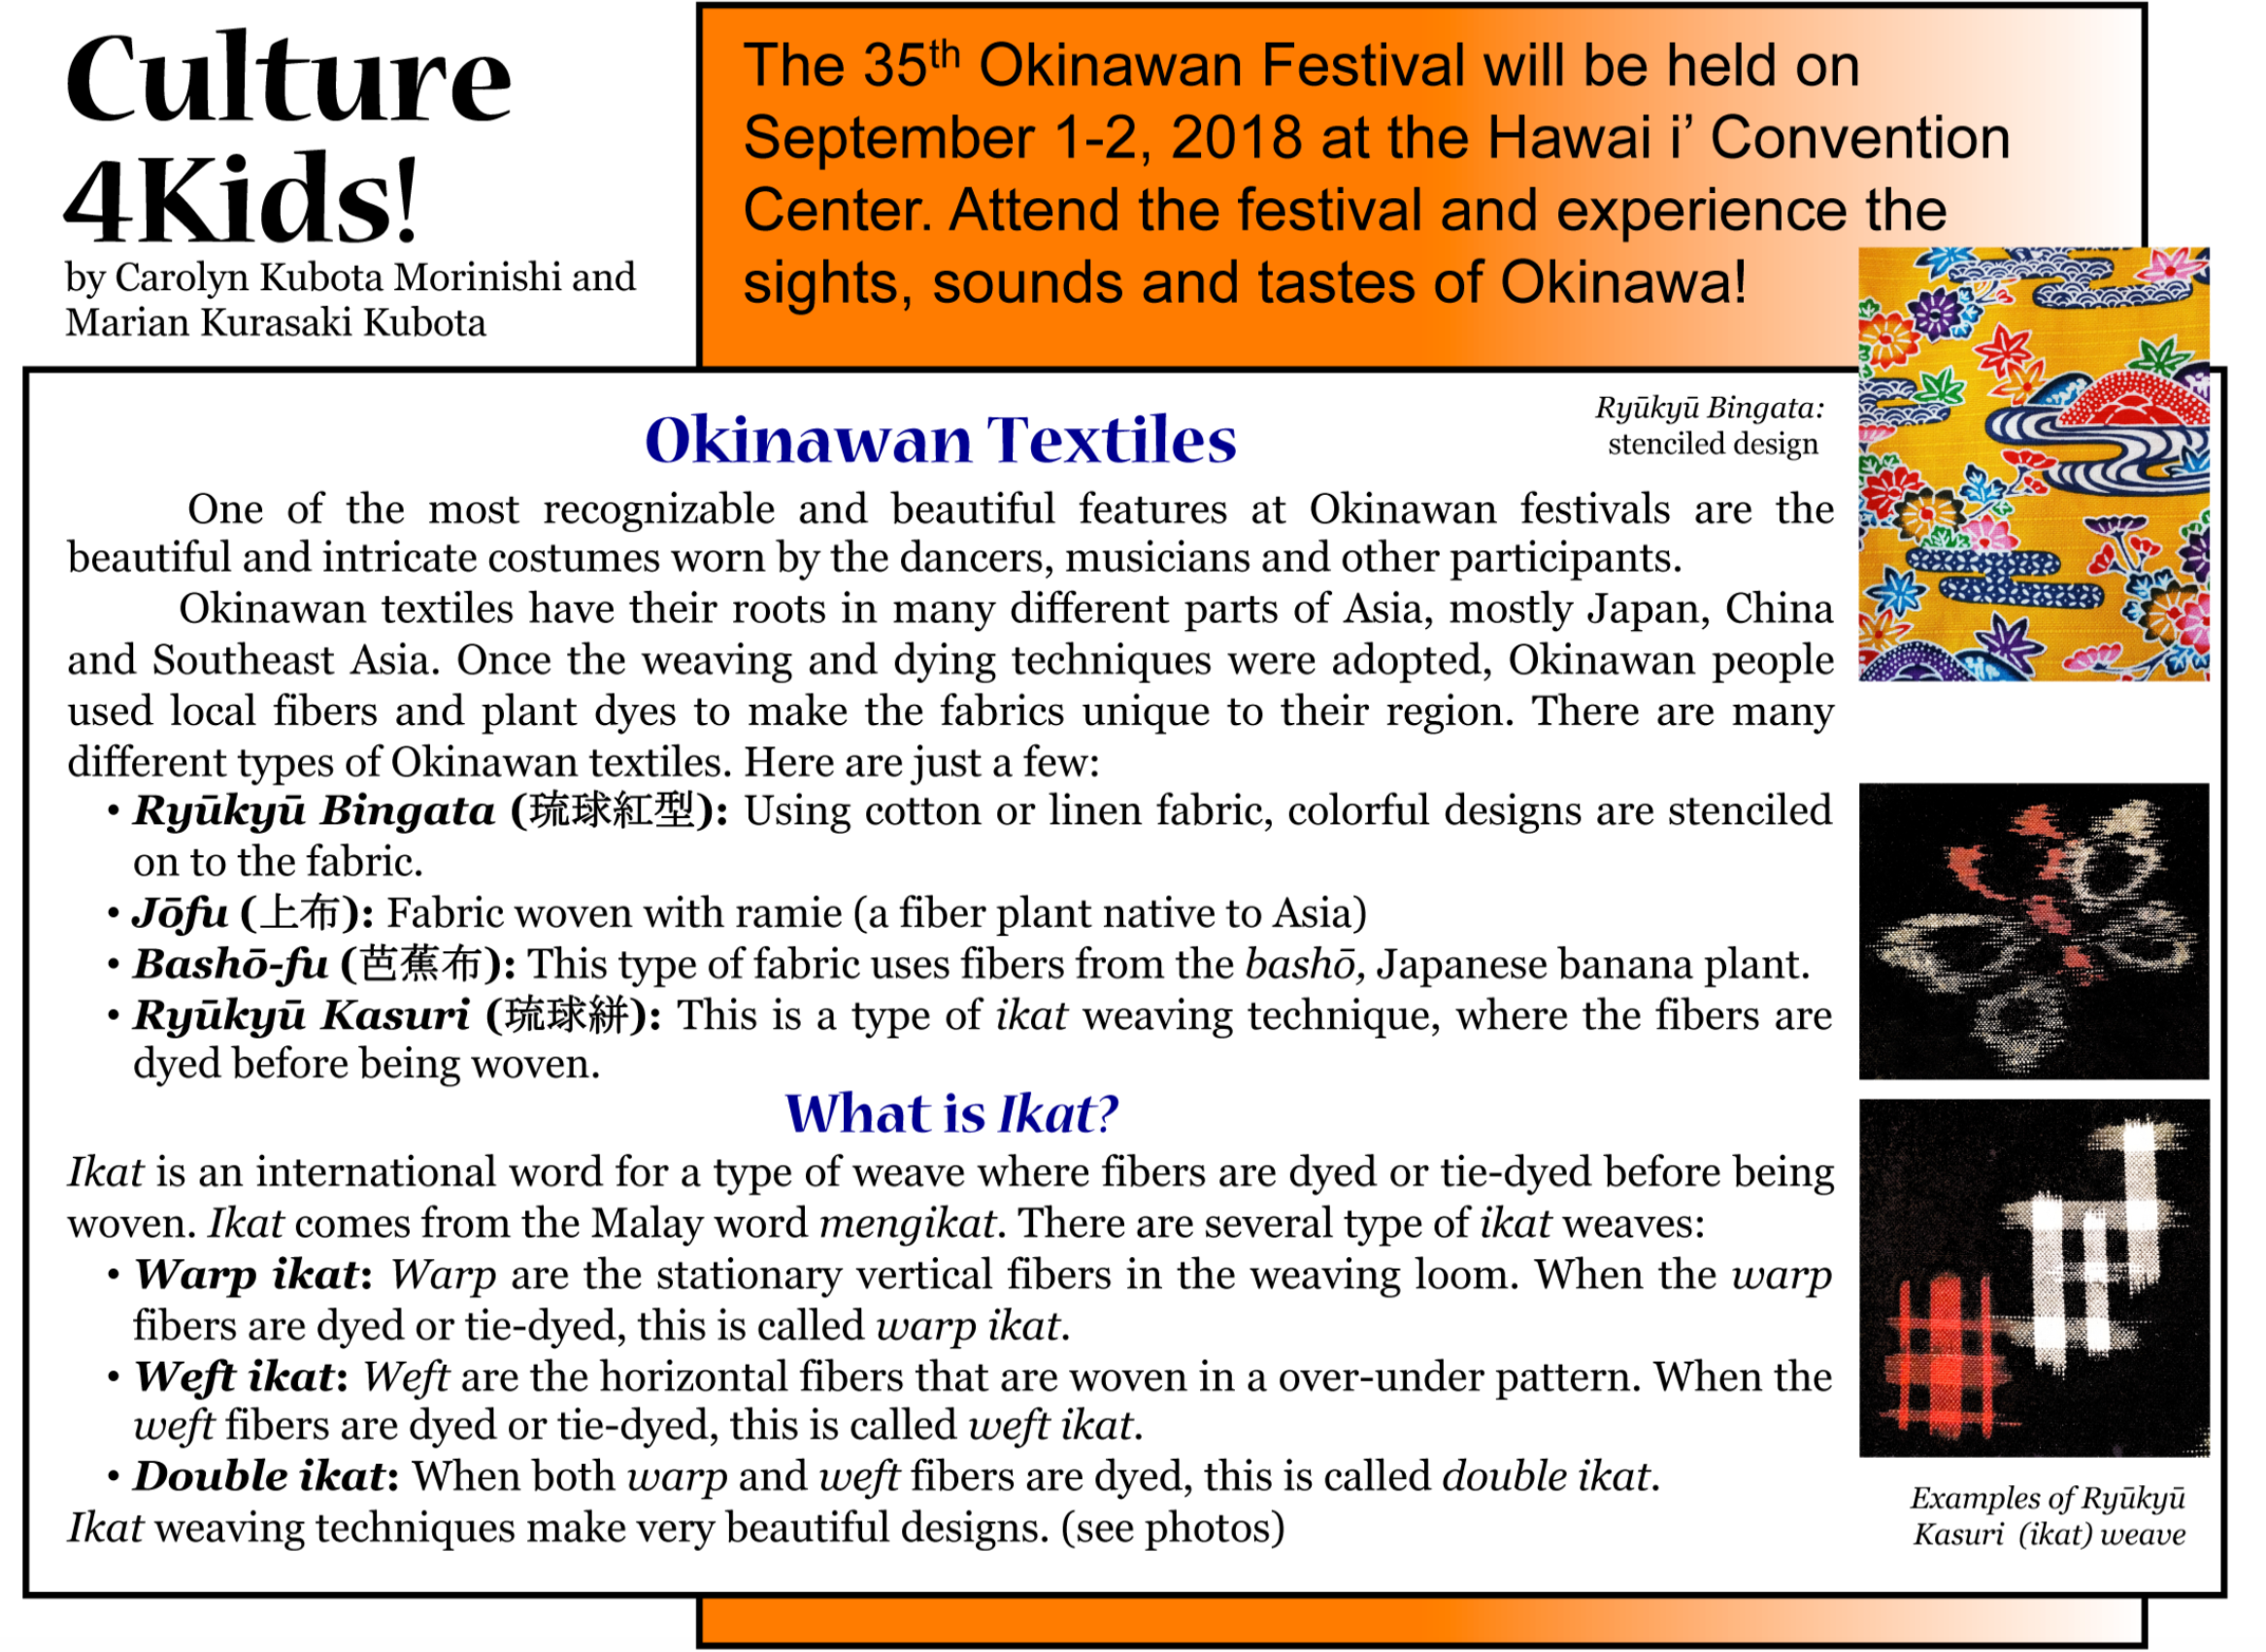 Culture4Kids! 35th Okinawan Festival 'Okinawan Textiles'